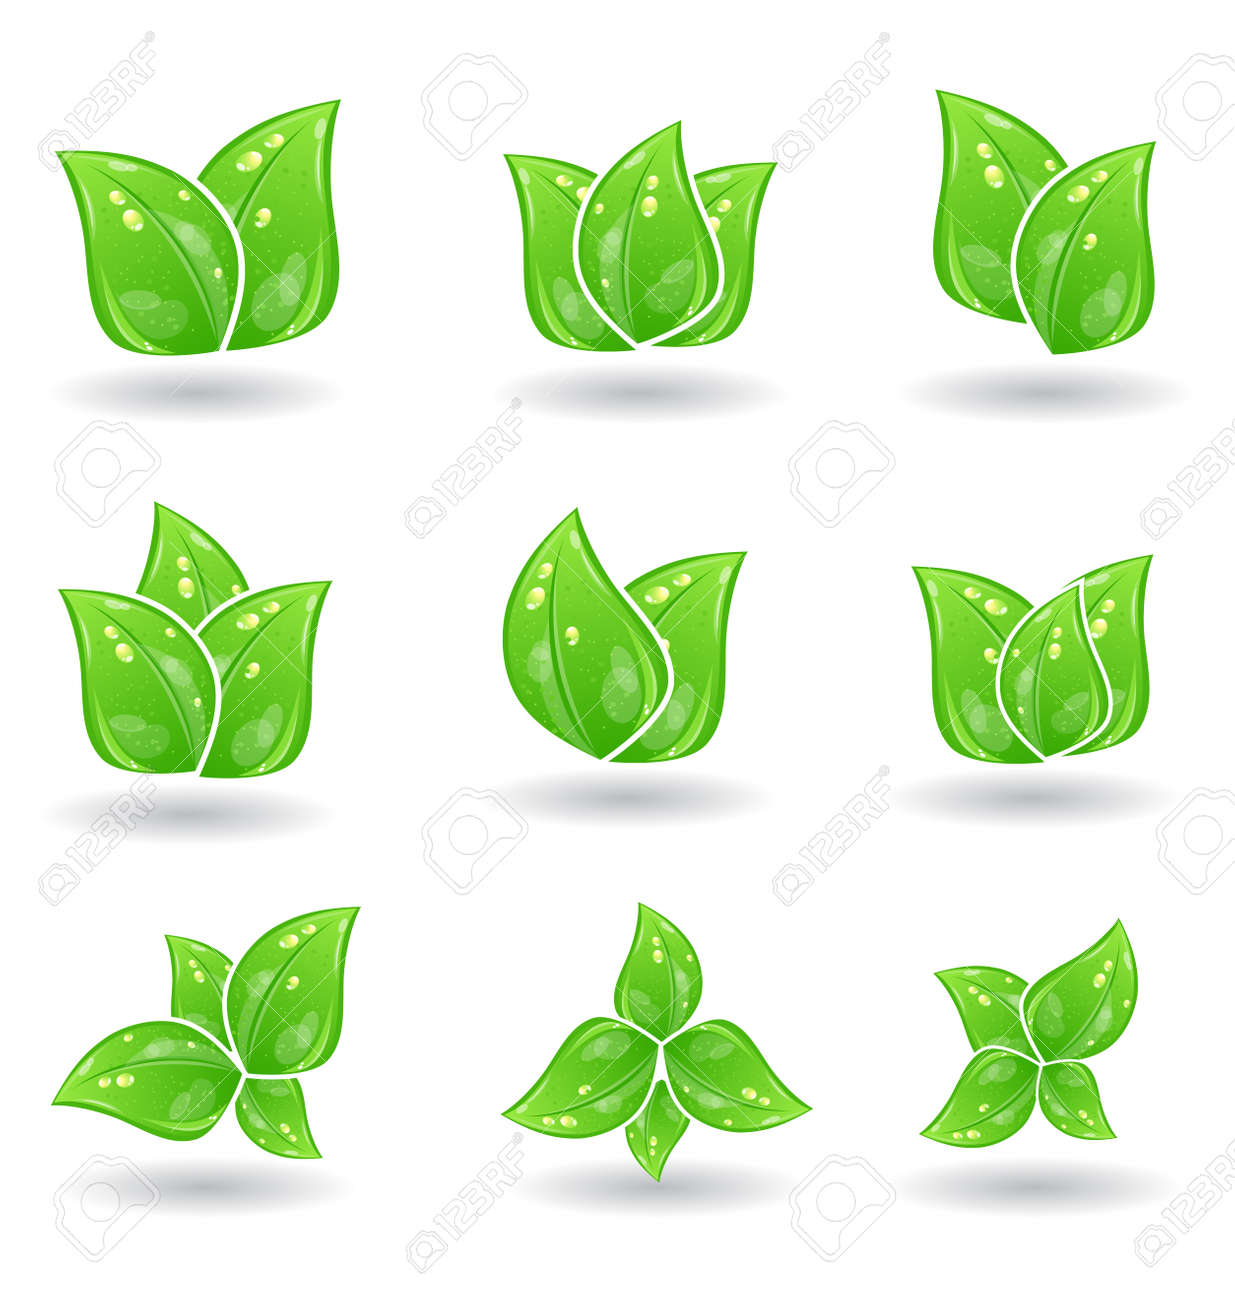 Illustration set of green eco leaves isolated on white background - vector Stock Vector - 24379759